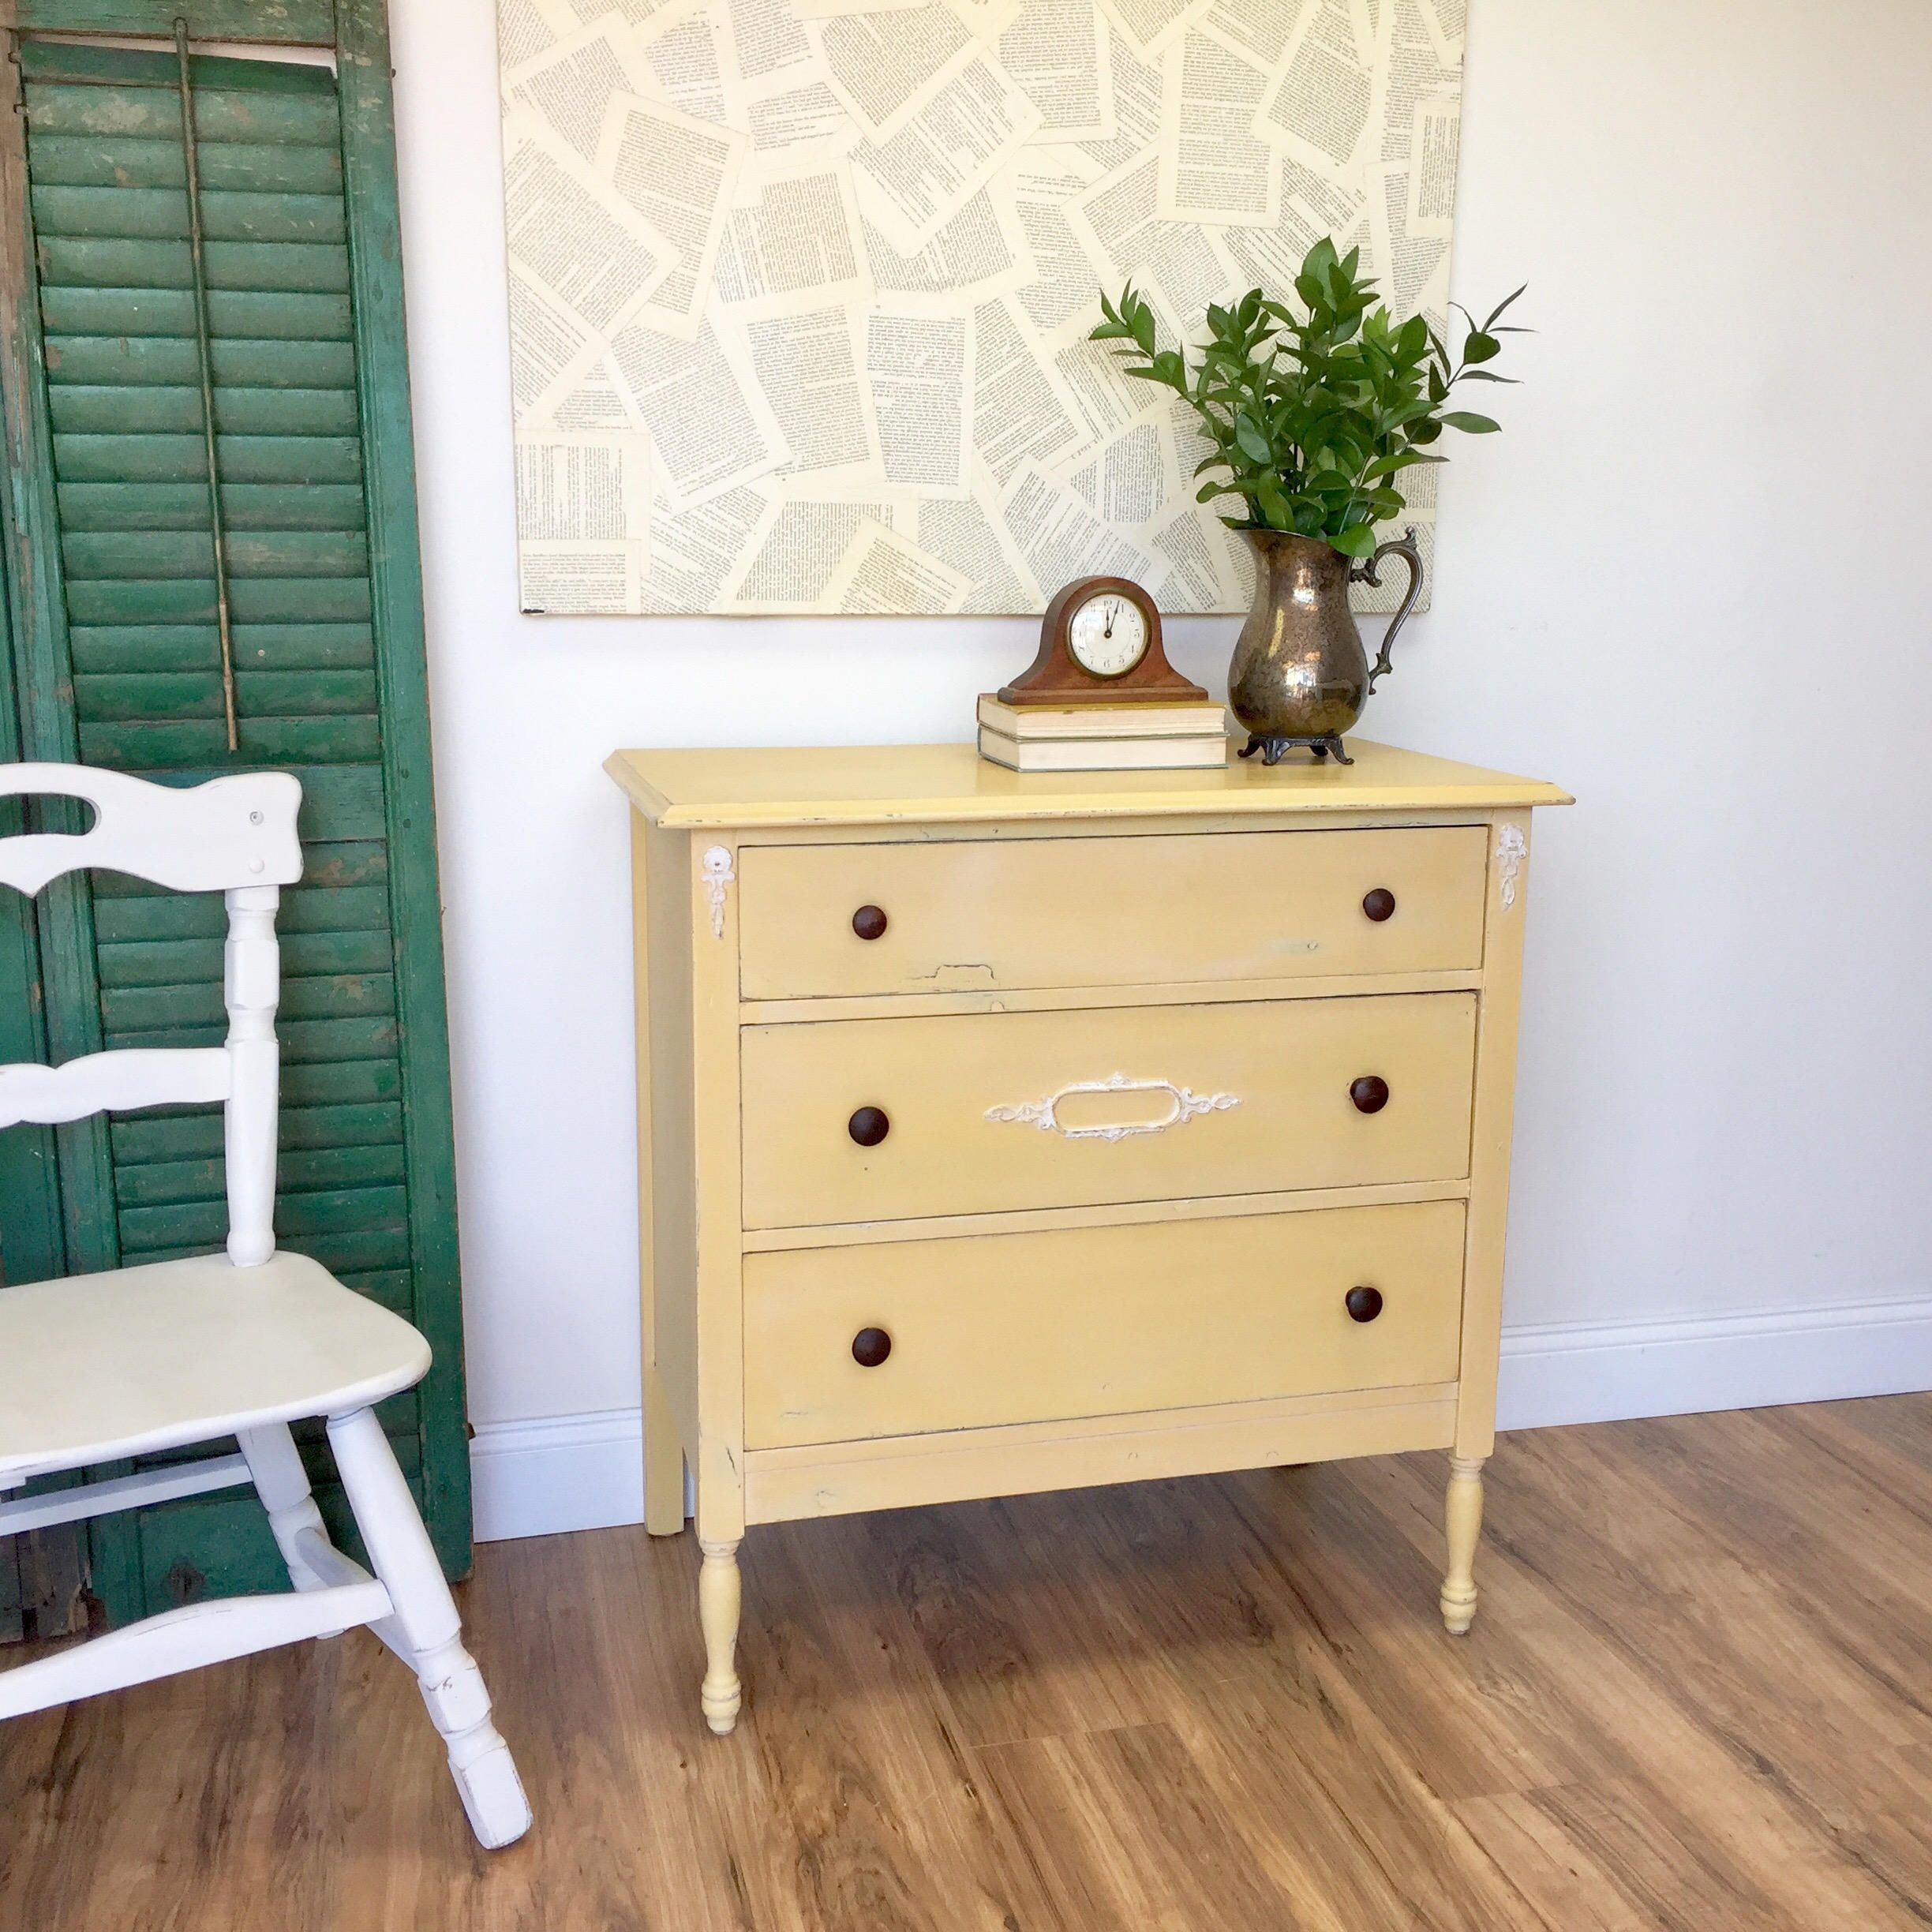 Farmhouse Dresser Antique Chest of Drawers, American